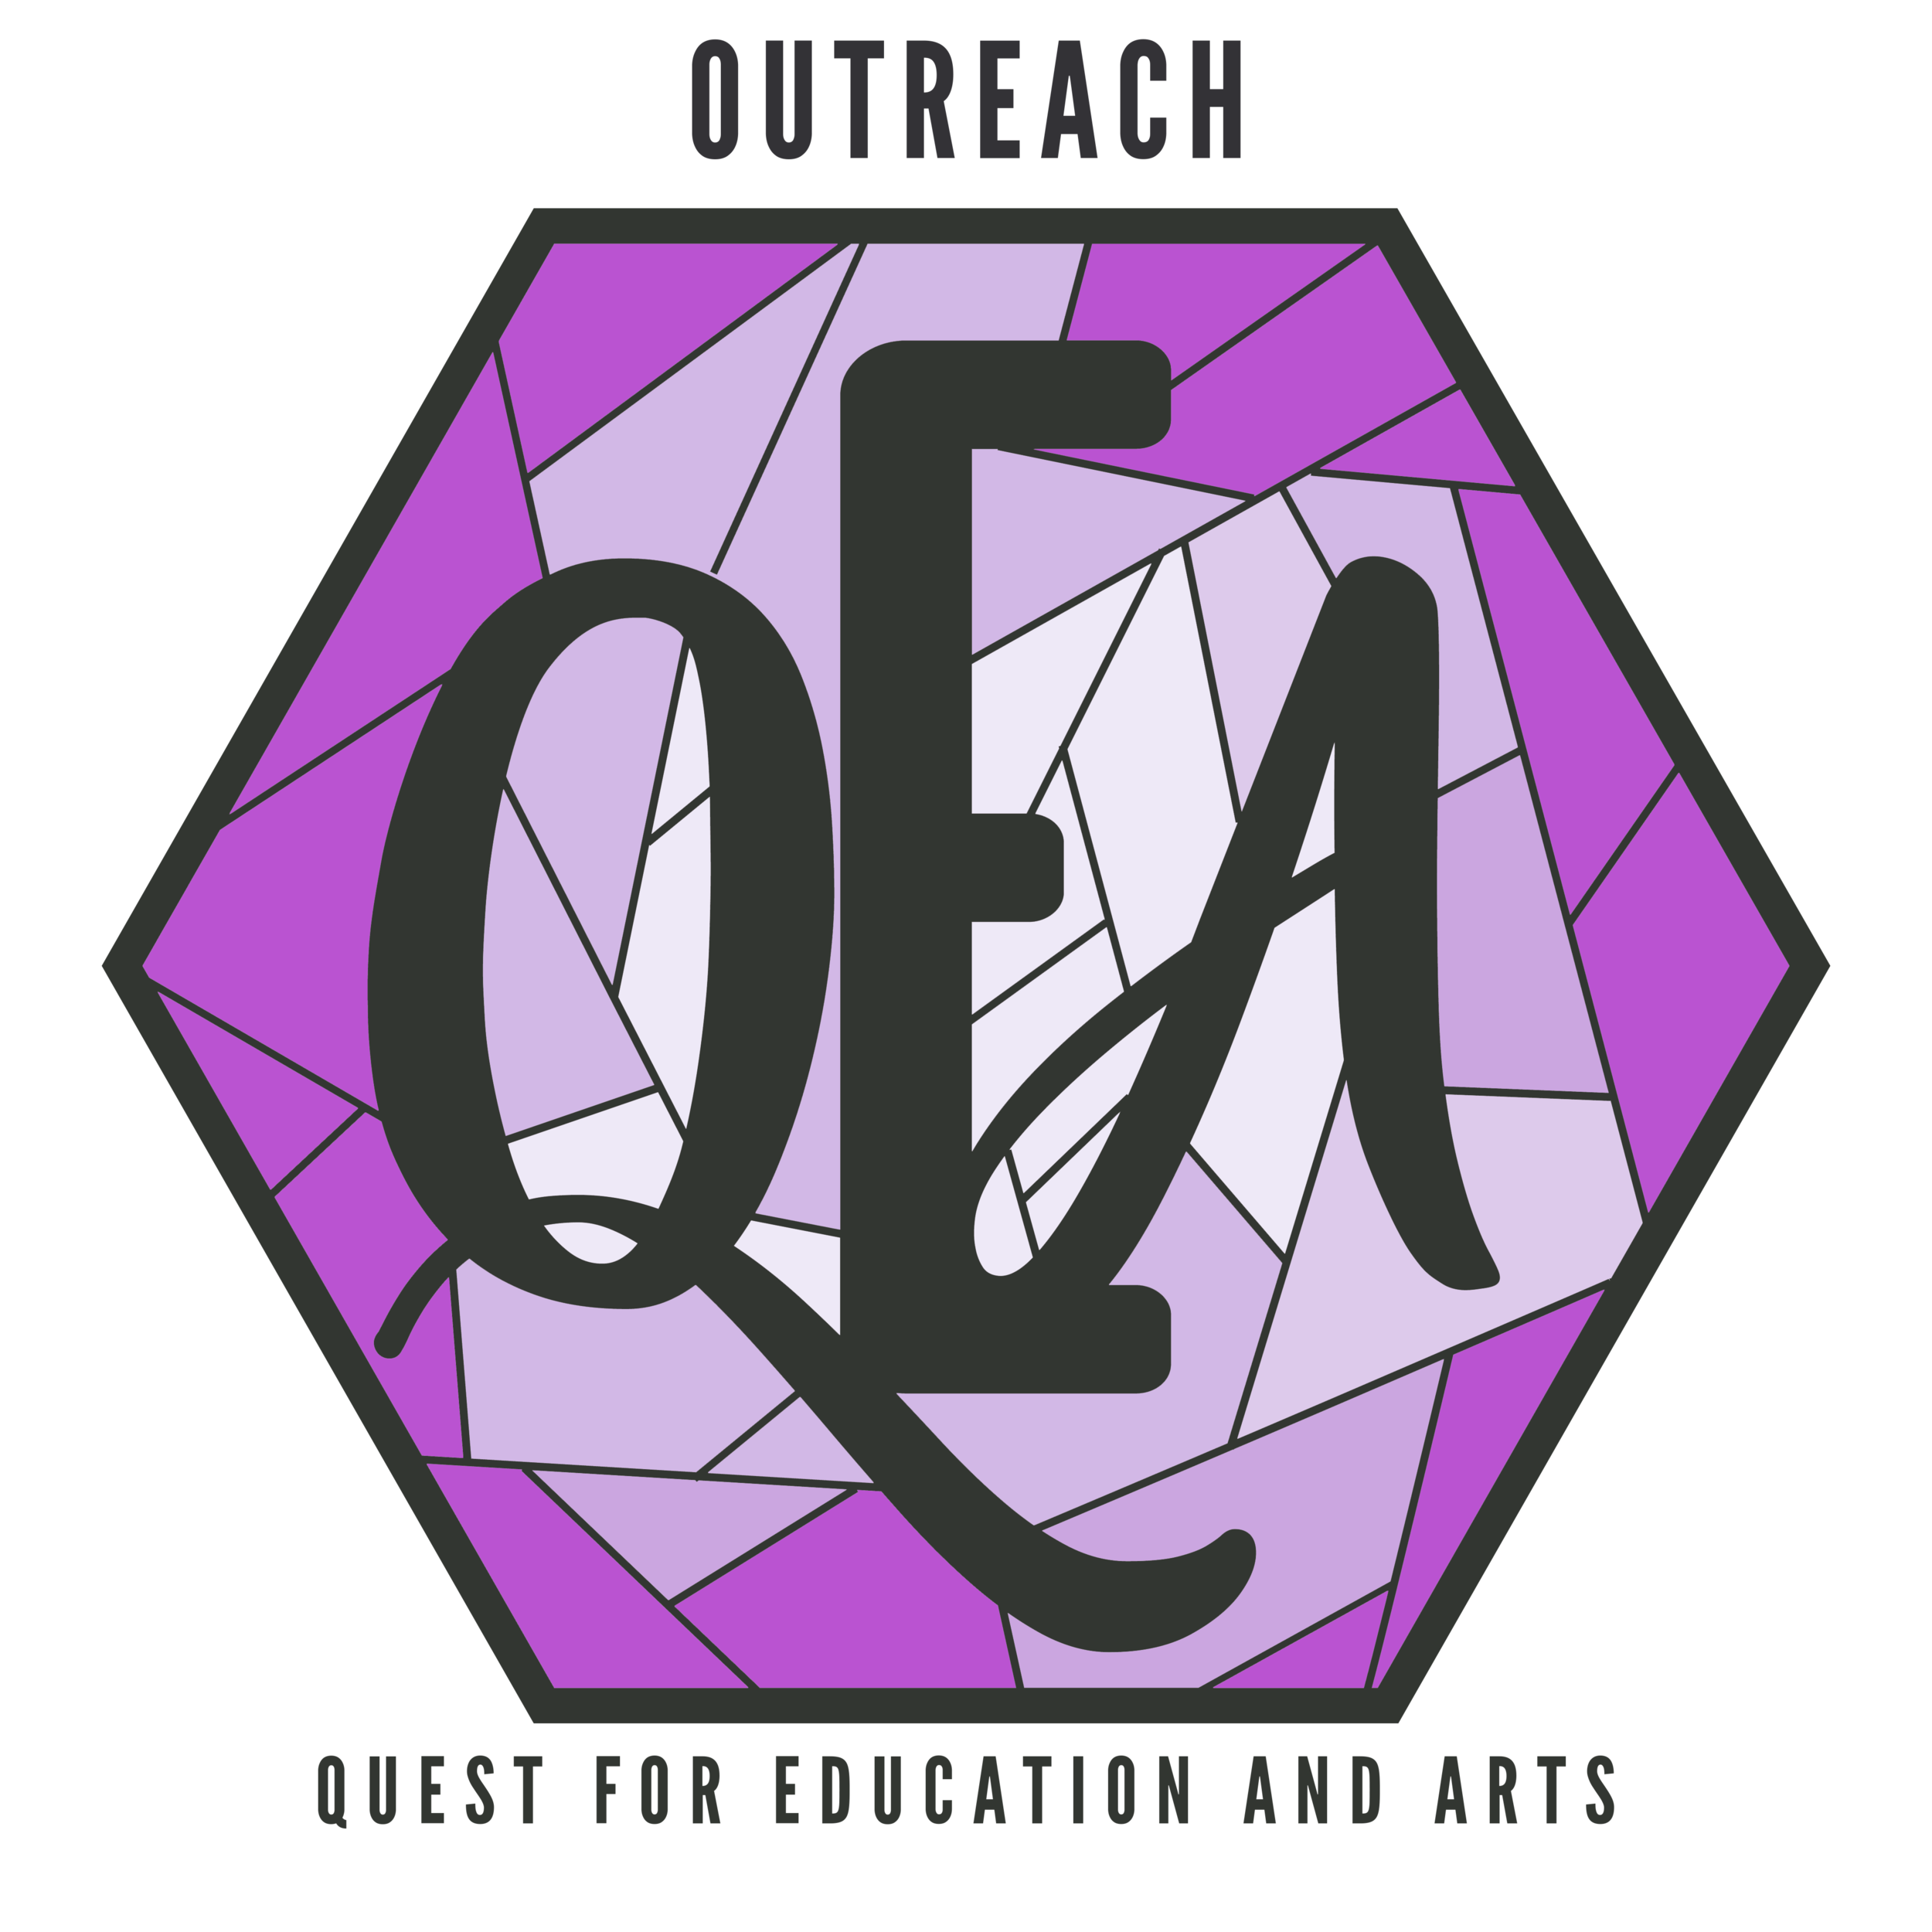 outreach_purple.png